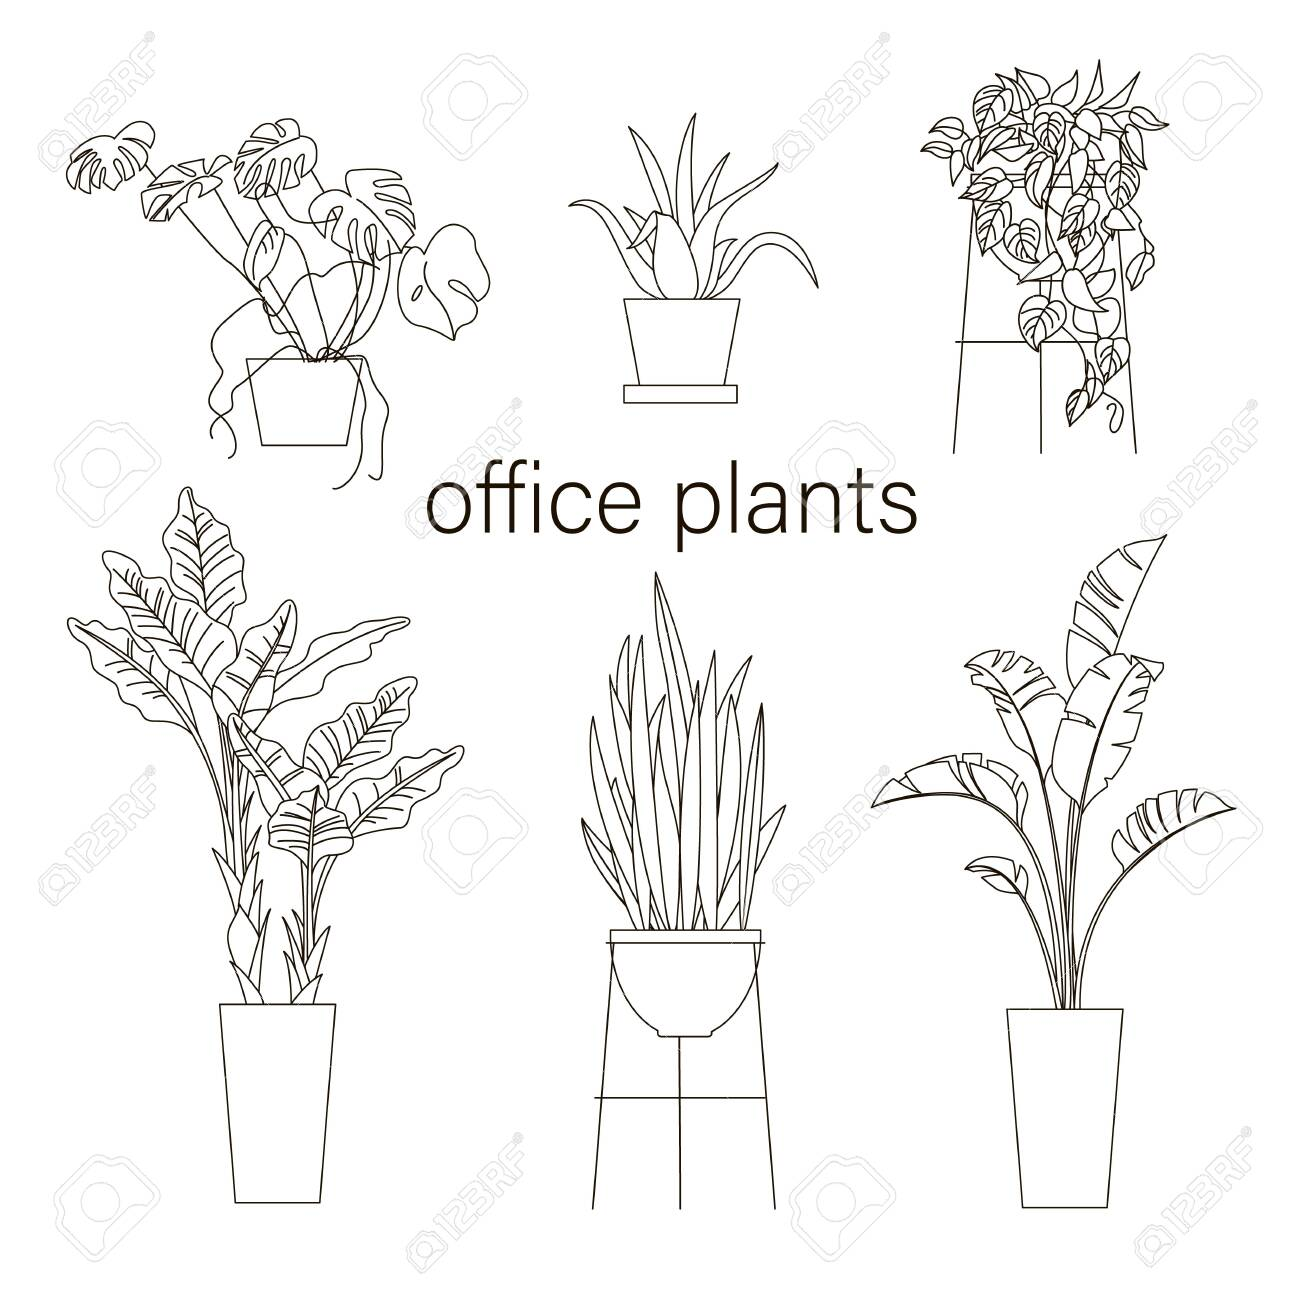 Set Of House Plant Line Drawing Vector Illustration Plants In Royalty Free Cliparts Vectors And Stock Illustration Image 138268151